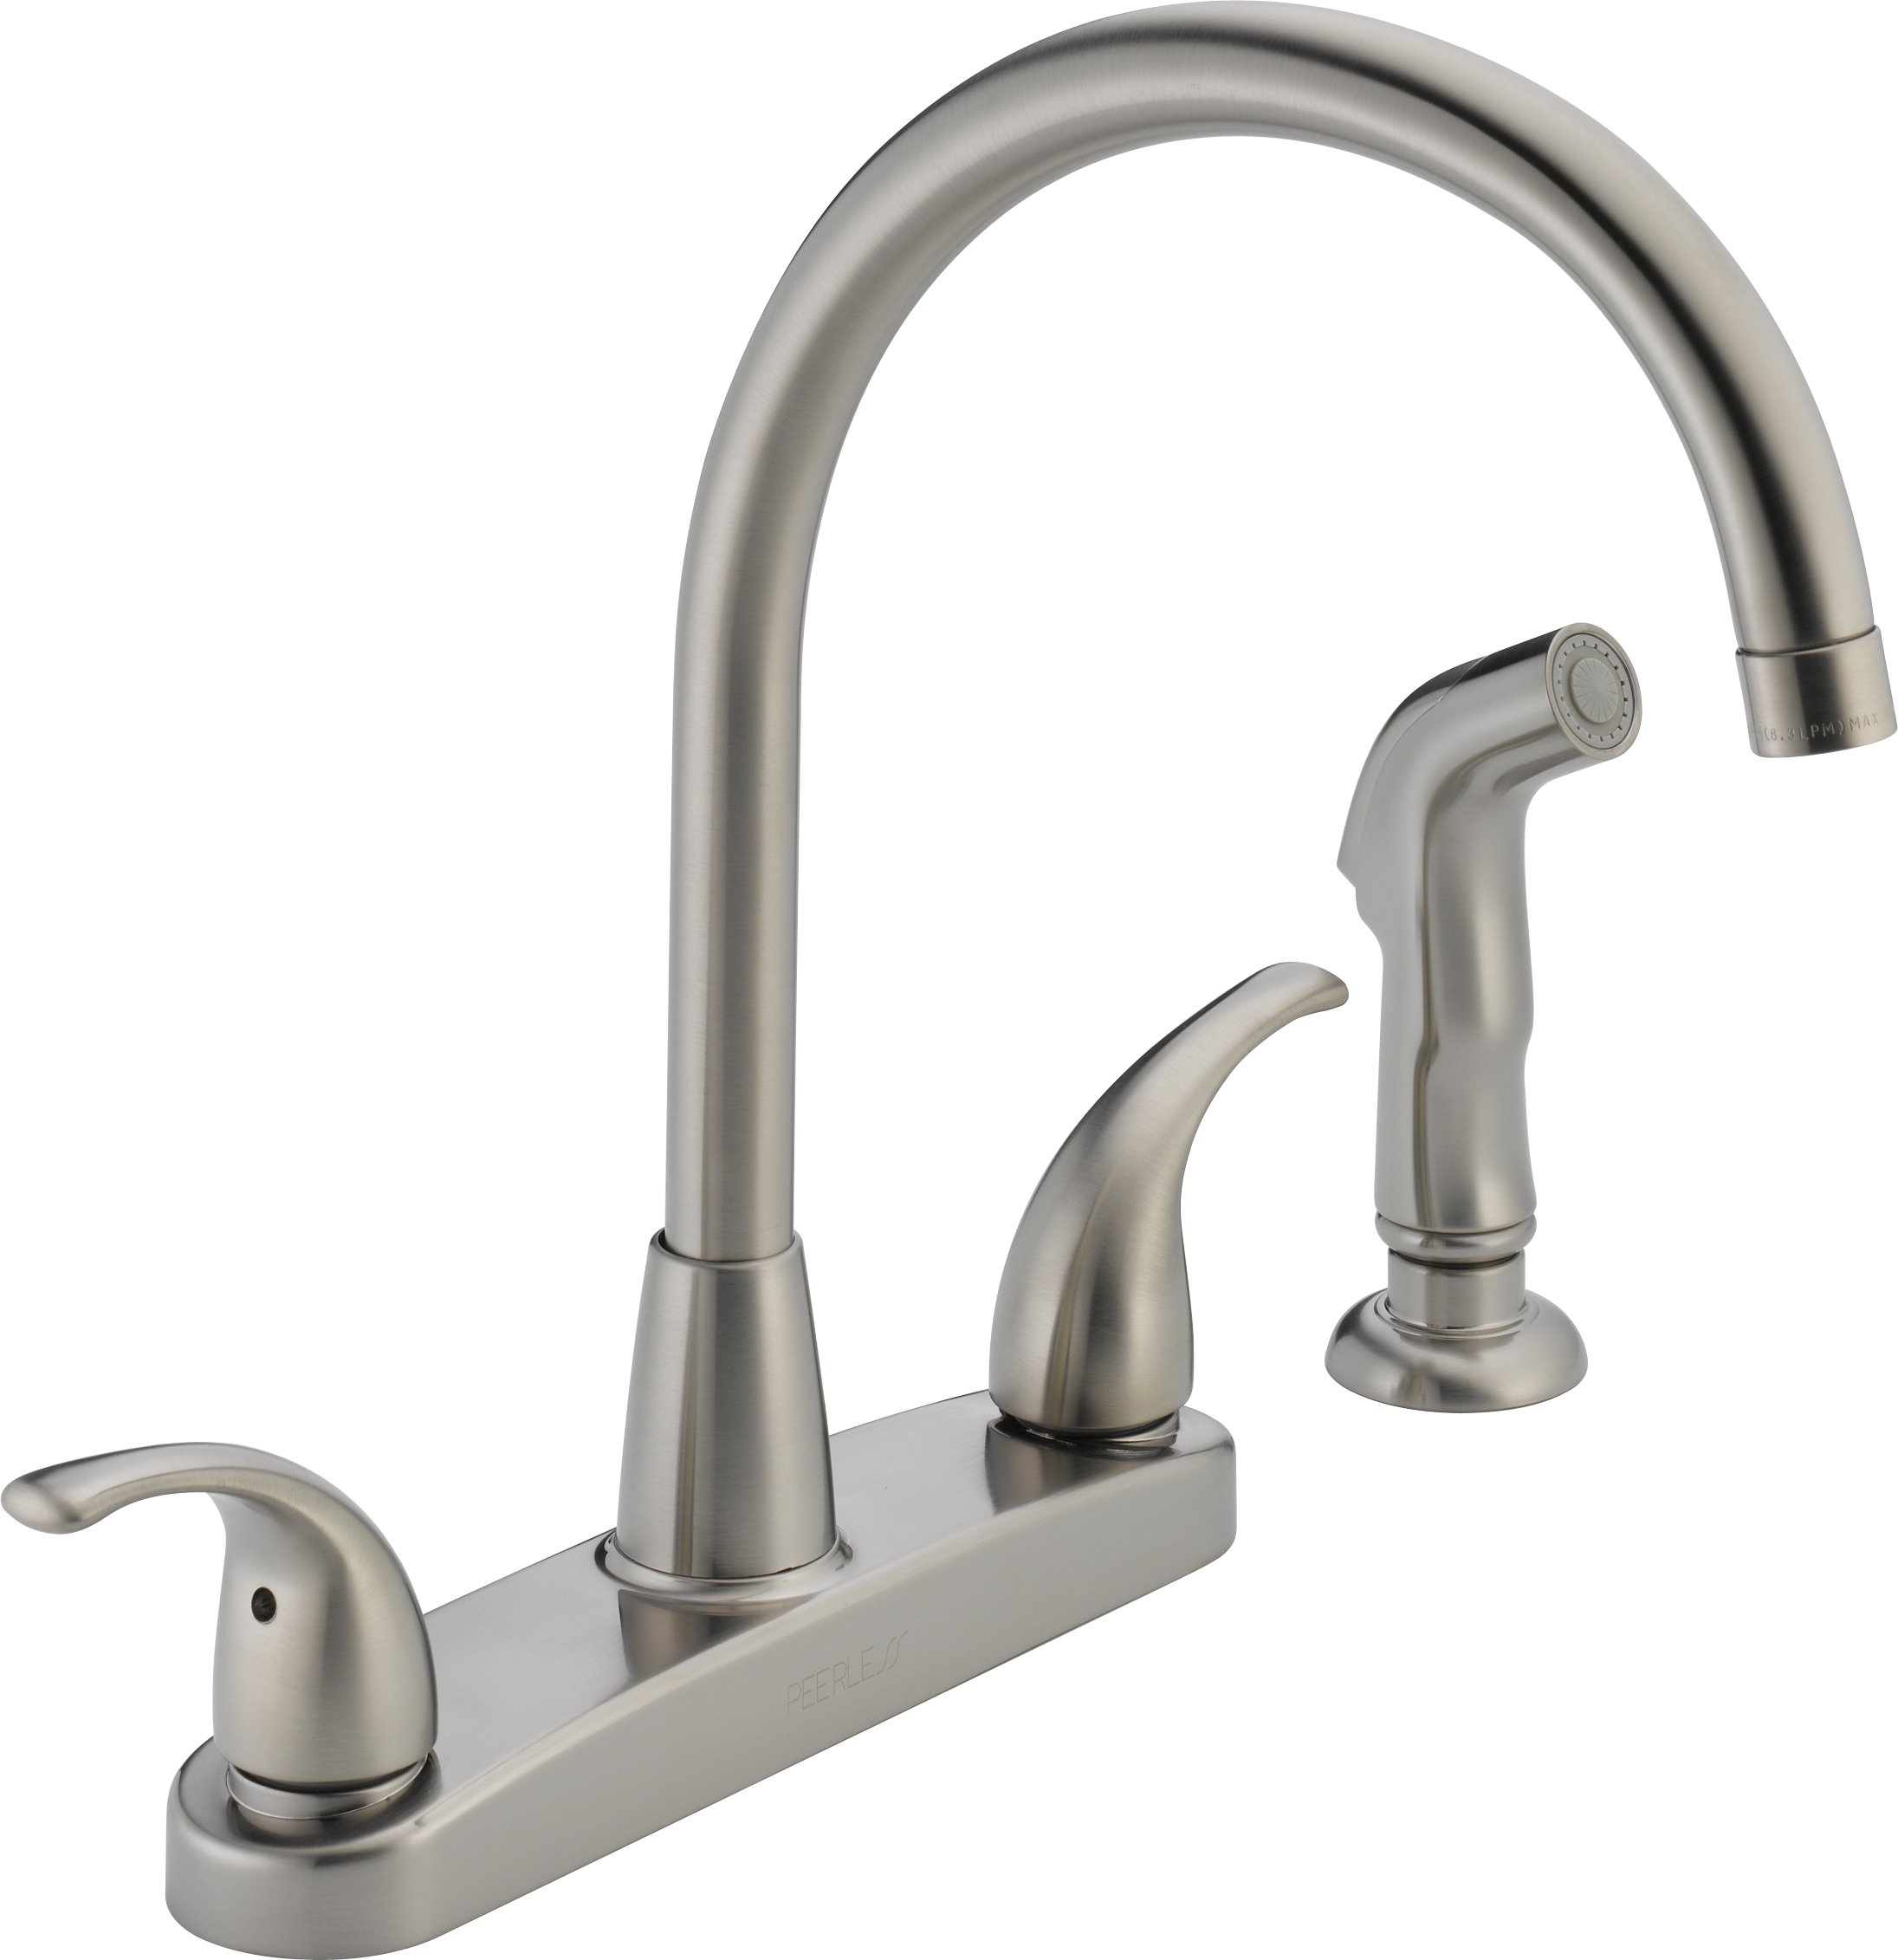 peerless p299578lf ss choice two handle kitchen faucet stainless steel - 4 Hole Kitchen Faucet